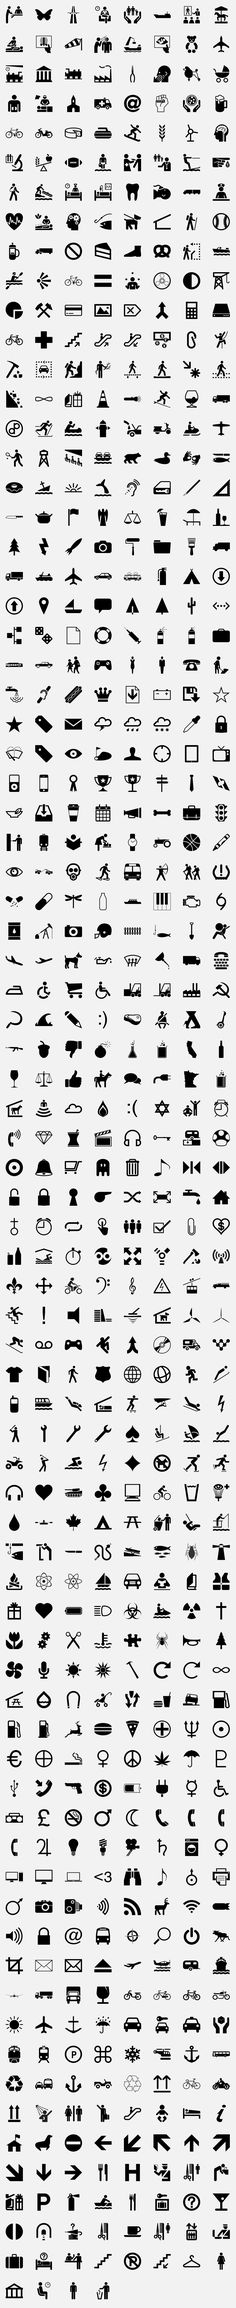 The Noun Project is a free,  online symbol library of the world's visual language that can be understood by all cultures and all people. http://thenounproject.com/  via 3oneseven #The_Noun_Project #3oneseven #Language #Symbols #Pictogram #Icon